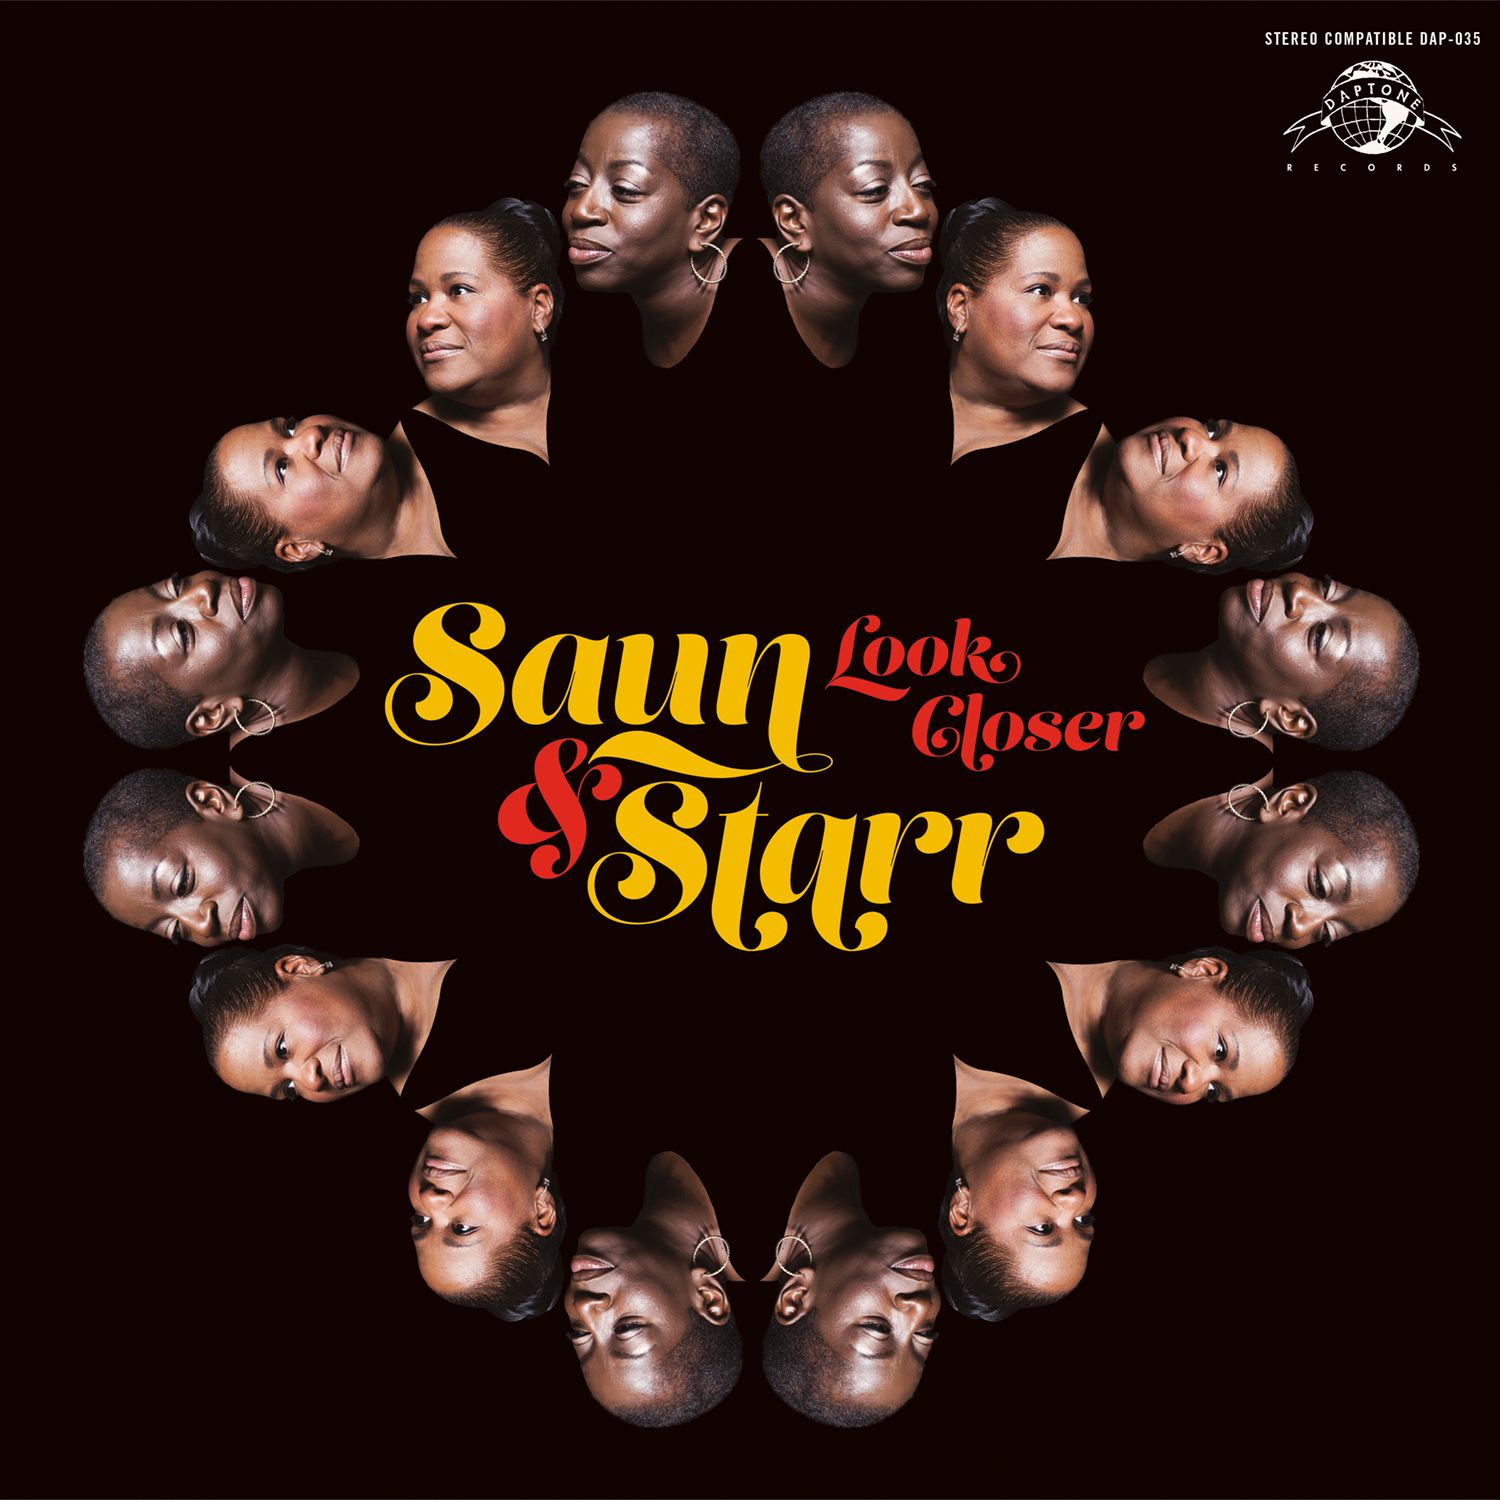 Saun and Star - Look Closer album art